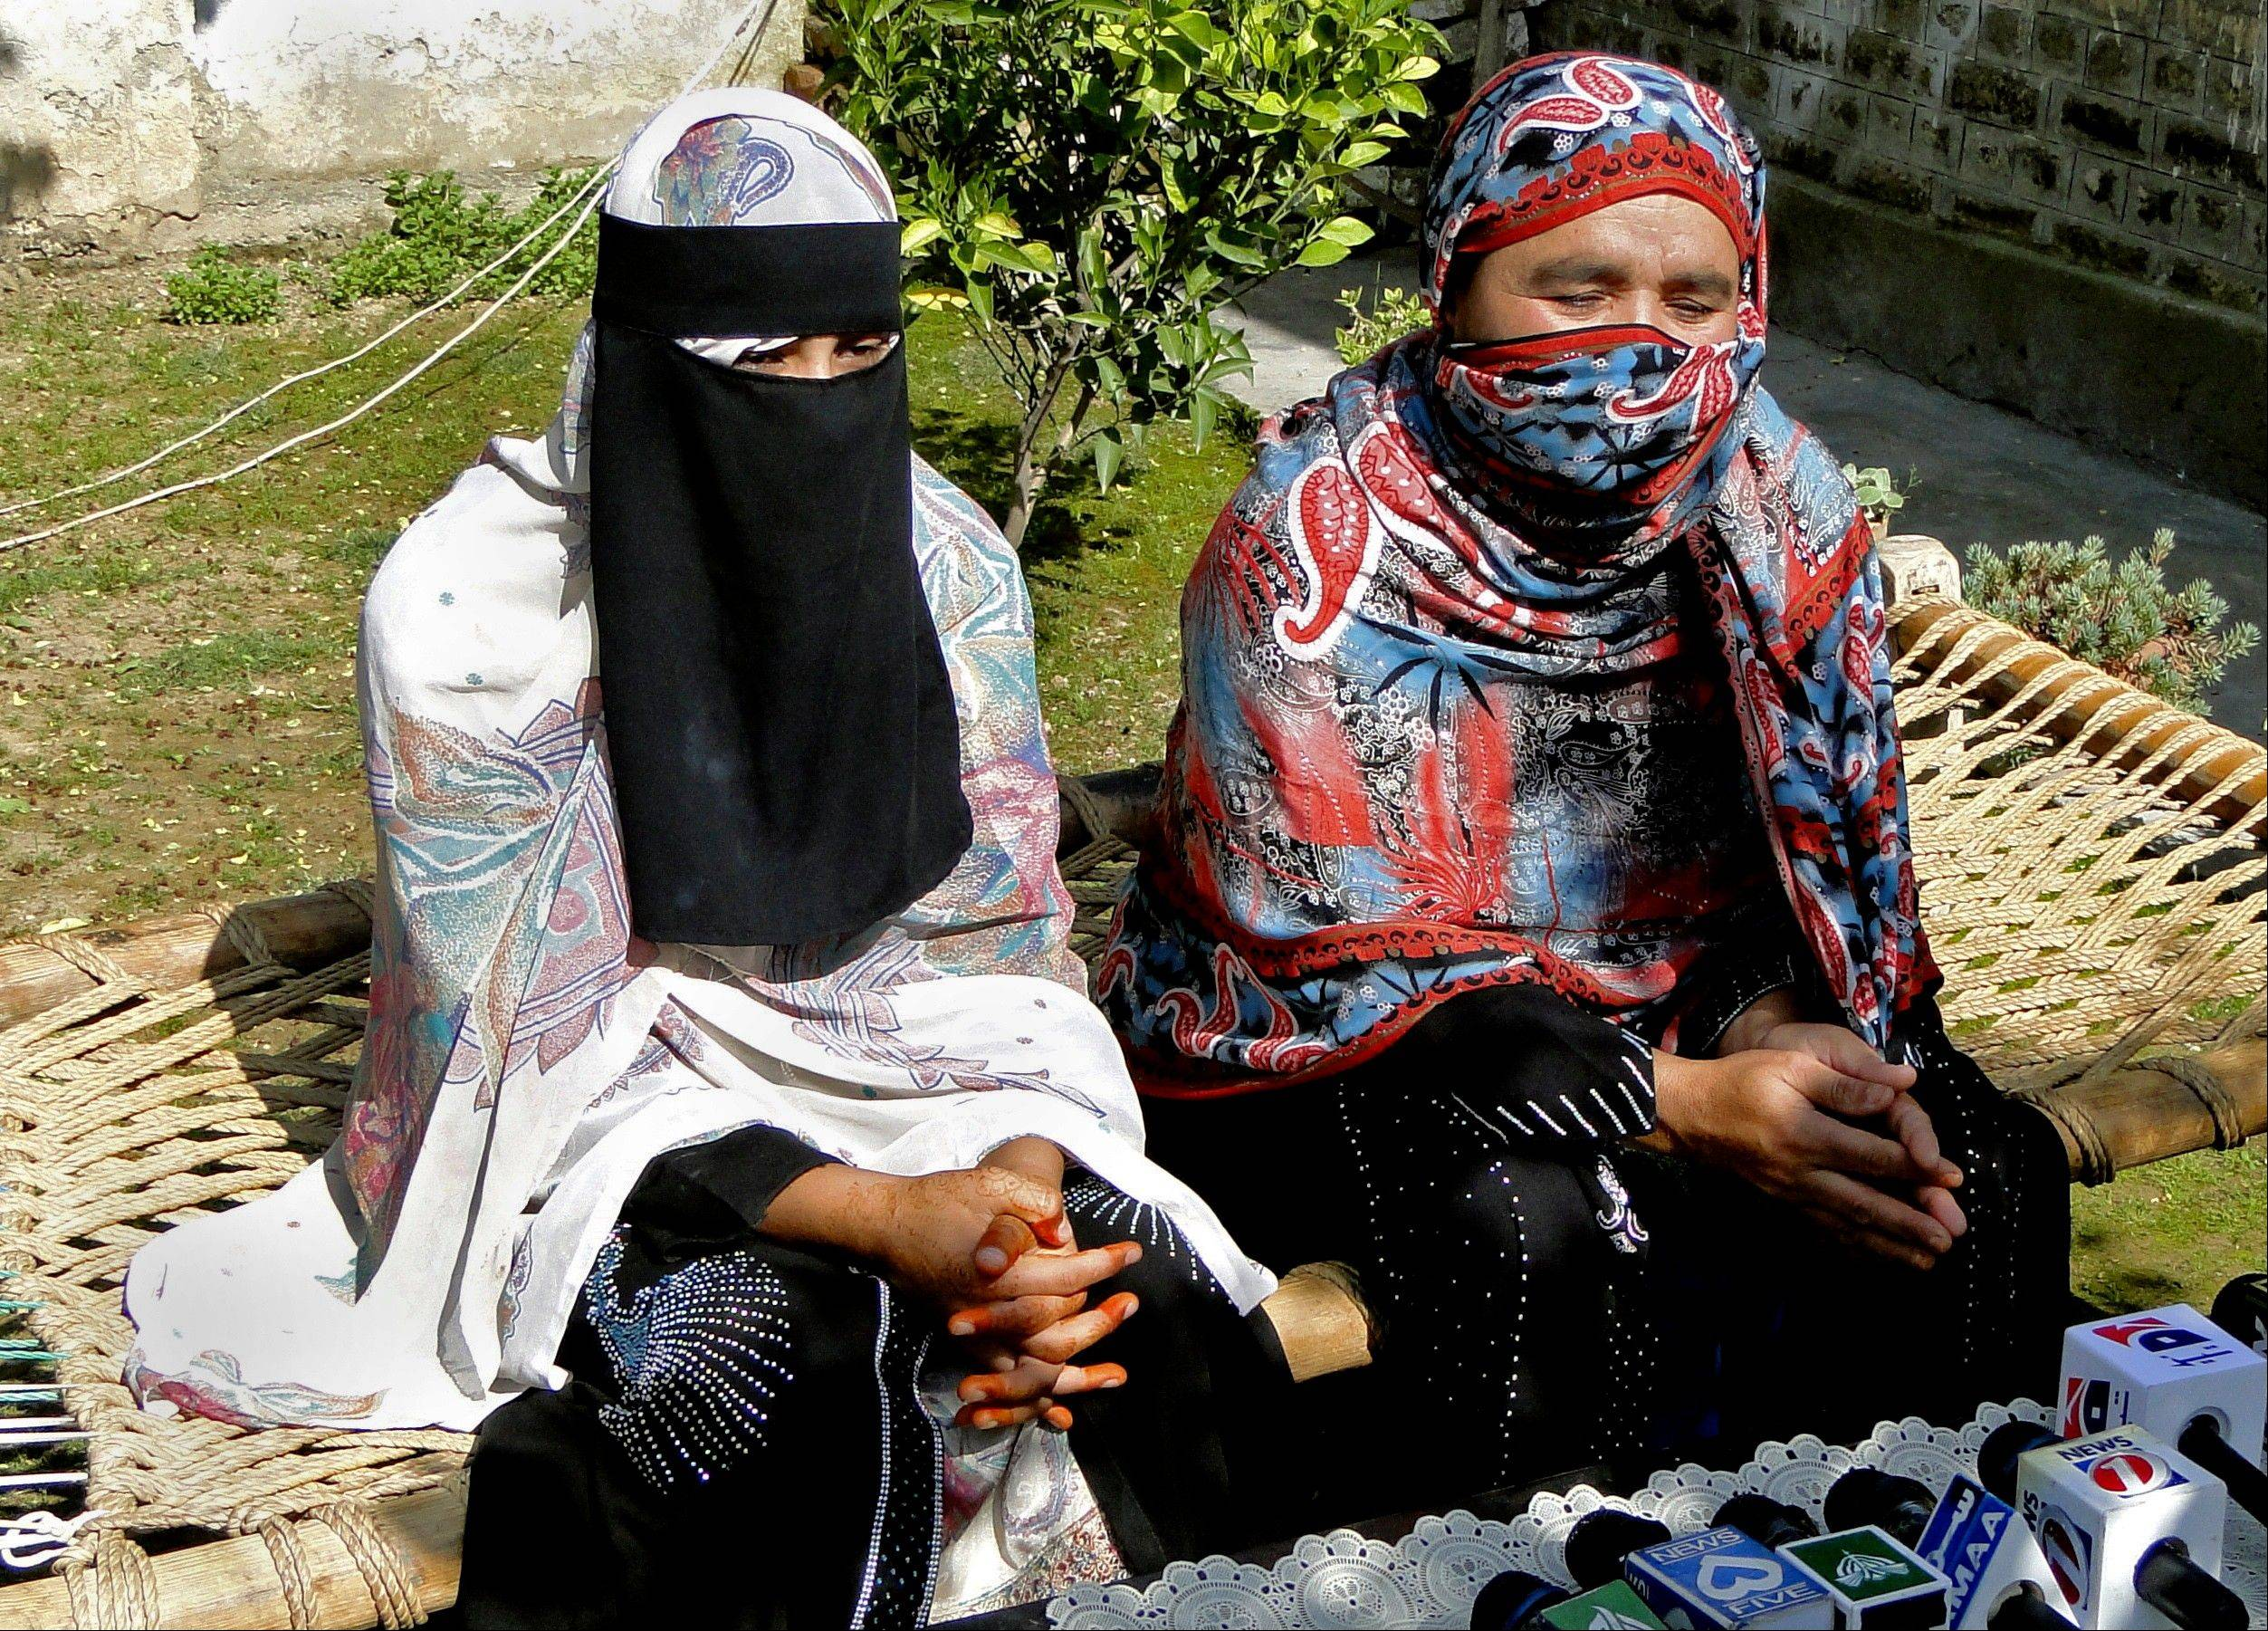 Badam Zari, right, addresses a news conference with her sister in Khar, capital of Pakistani tribal area of Bajur on Monday. Zari, a 40-year-old Pakistani housewife, has made history by becoming the first woman to run for parliament from the country's northwest tribal region, a highly conservative area that is a haven for Islamist militants.